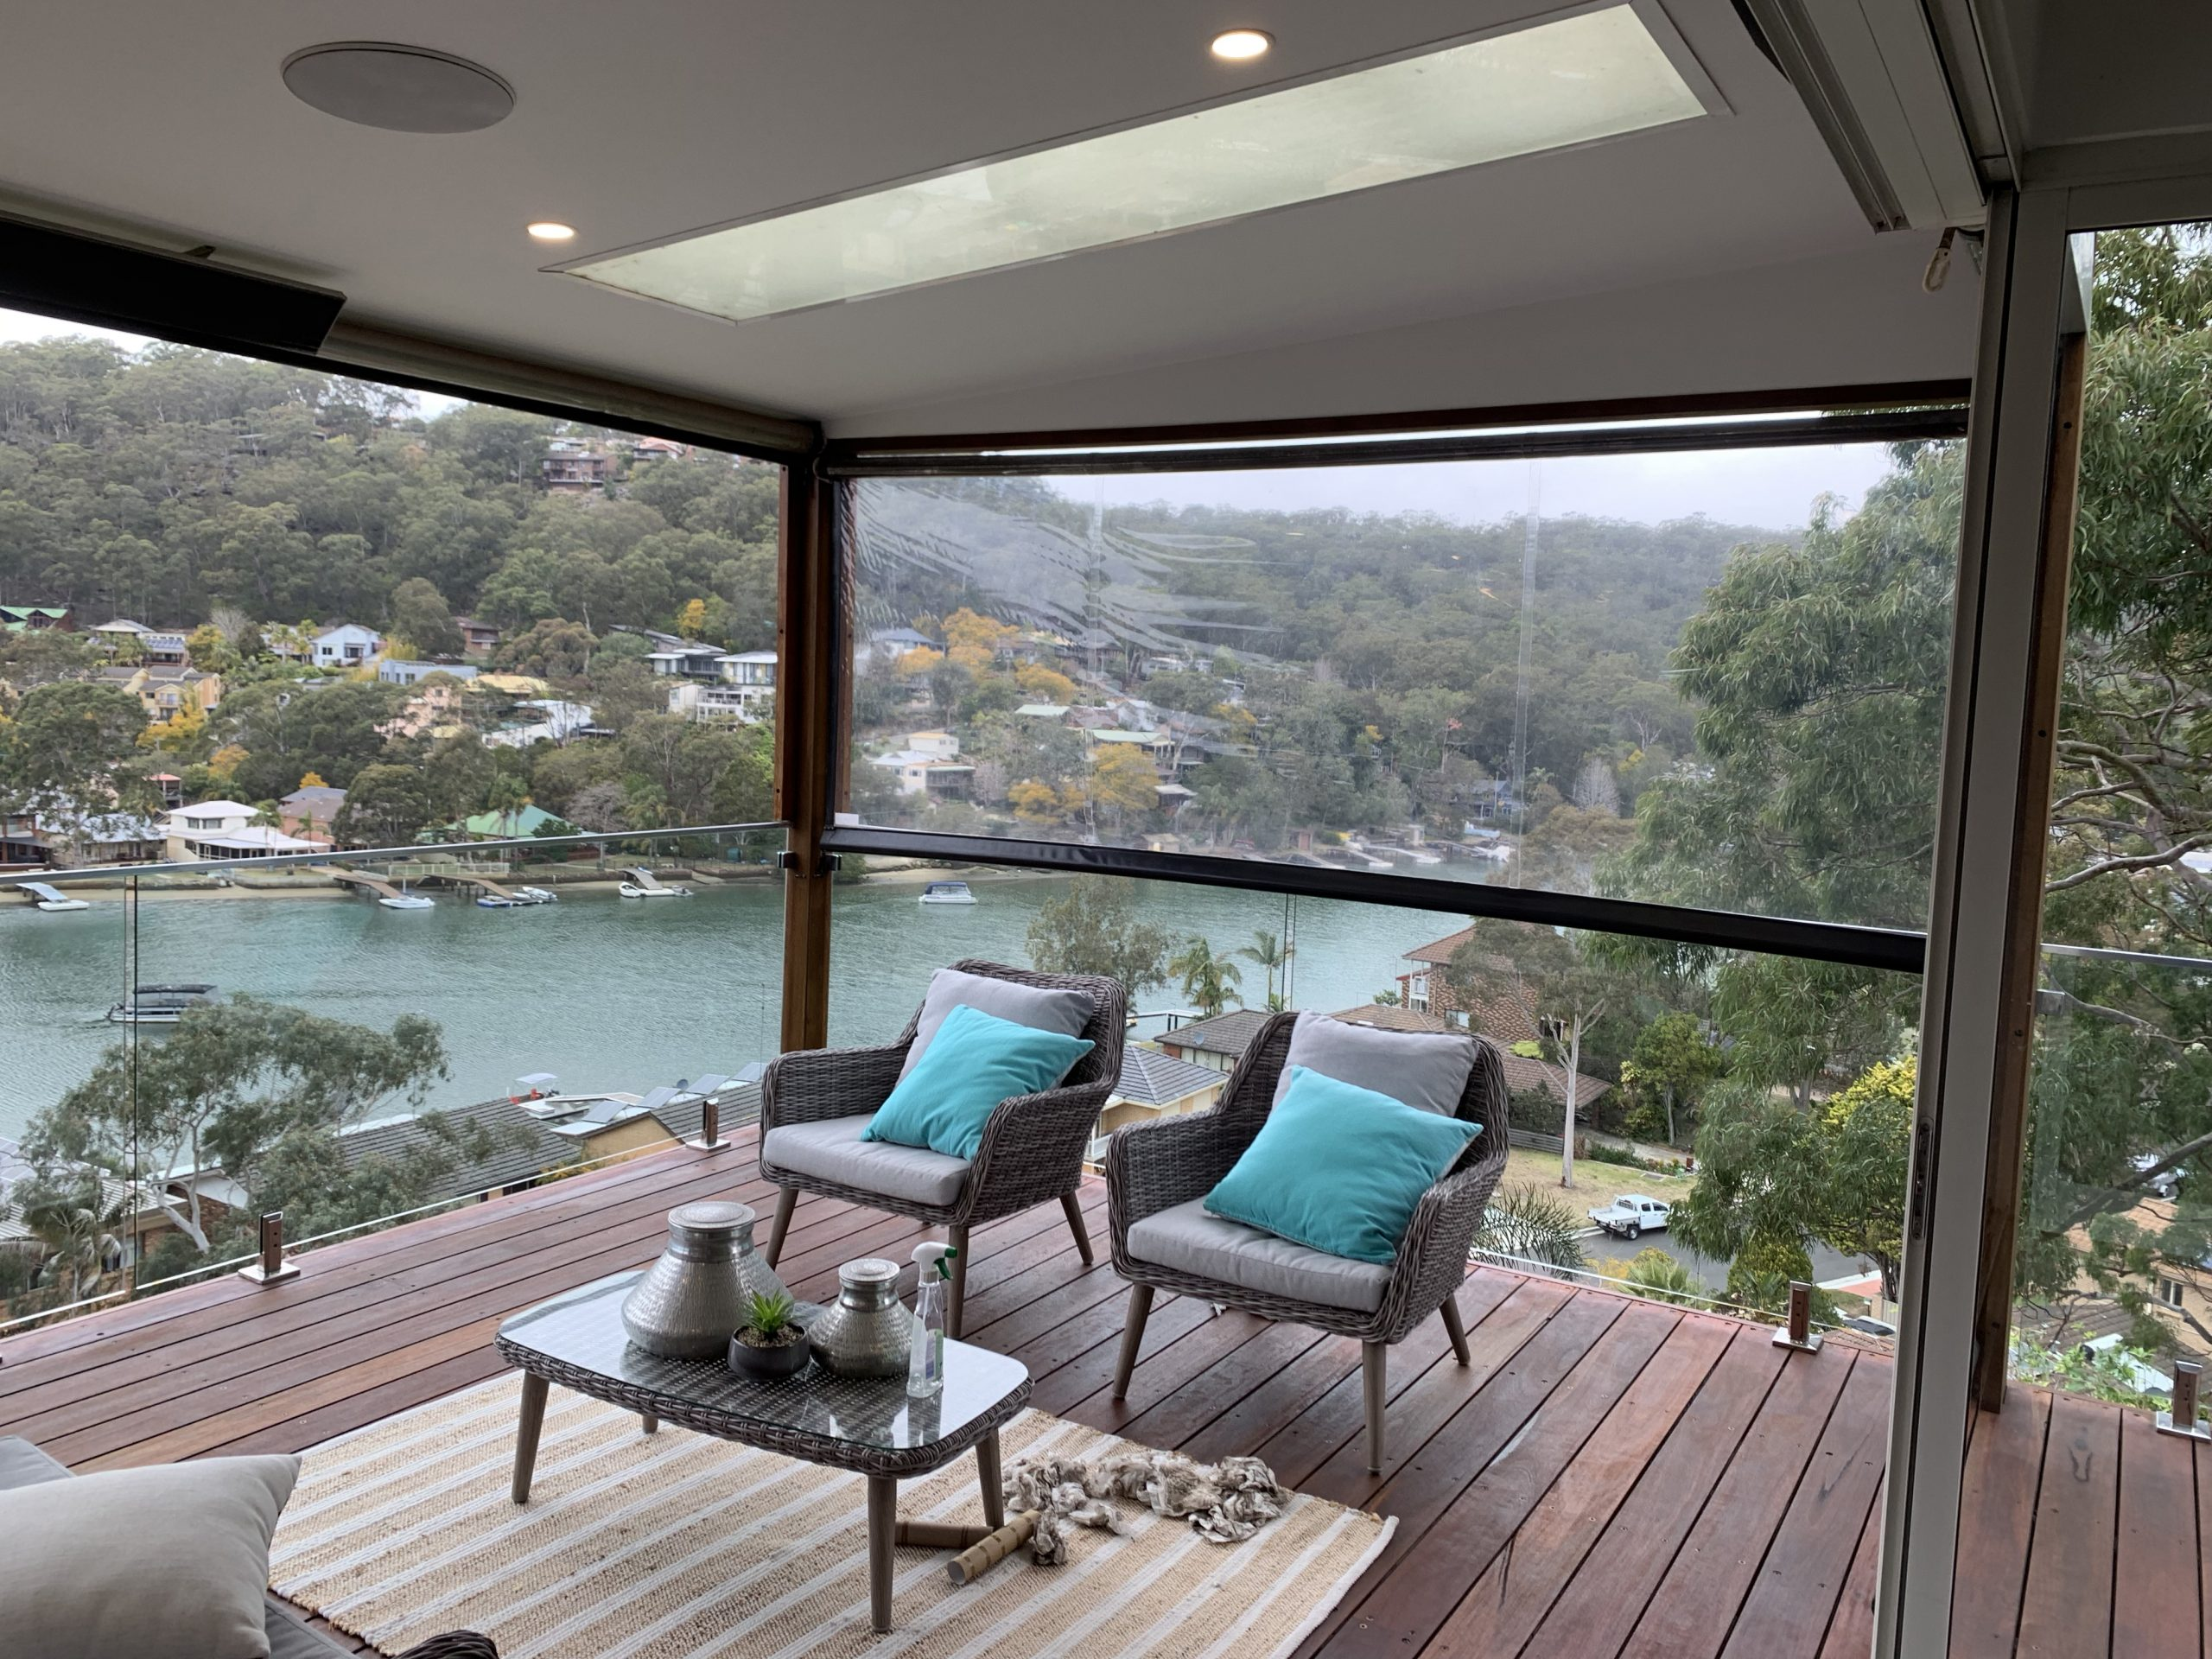 Woronora Sutherland Shire New Build External Decking